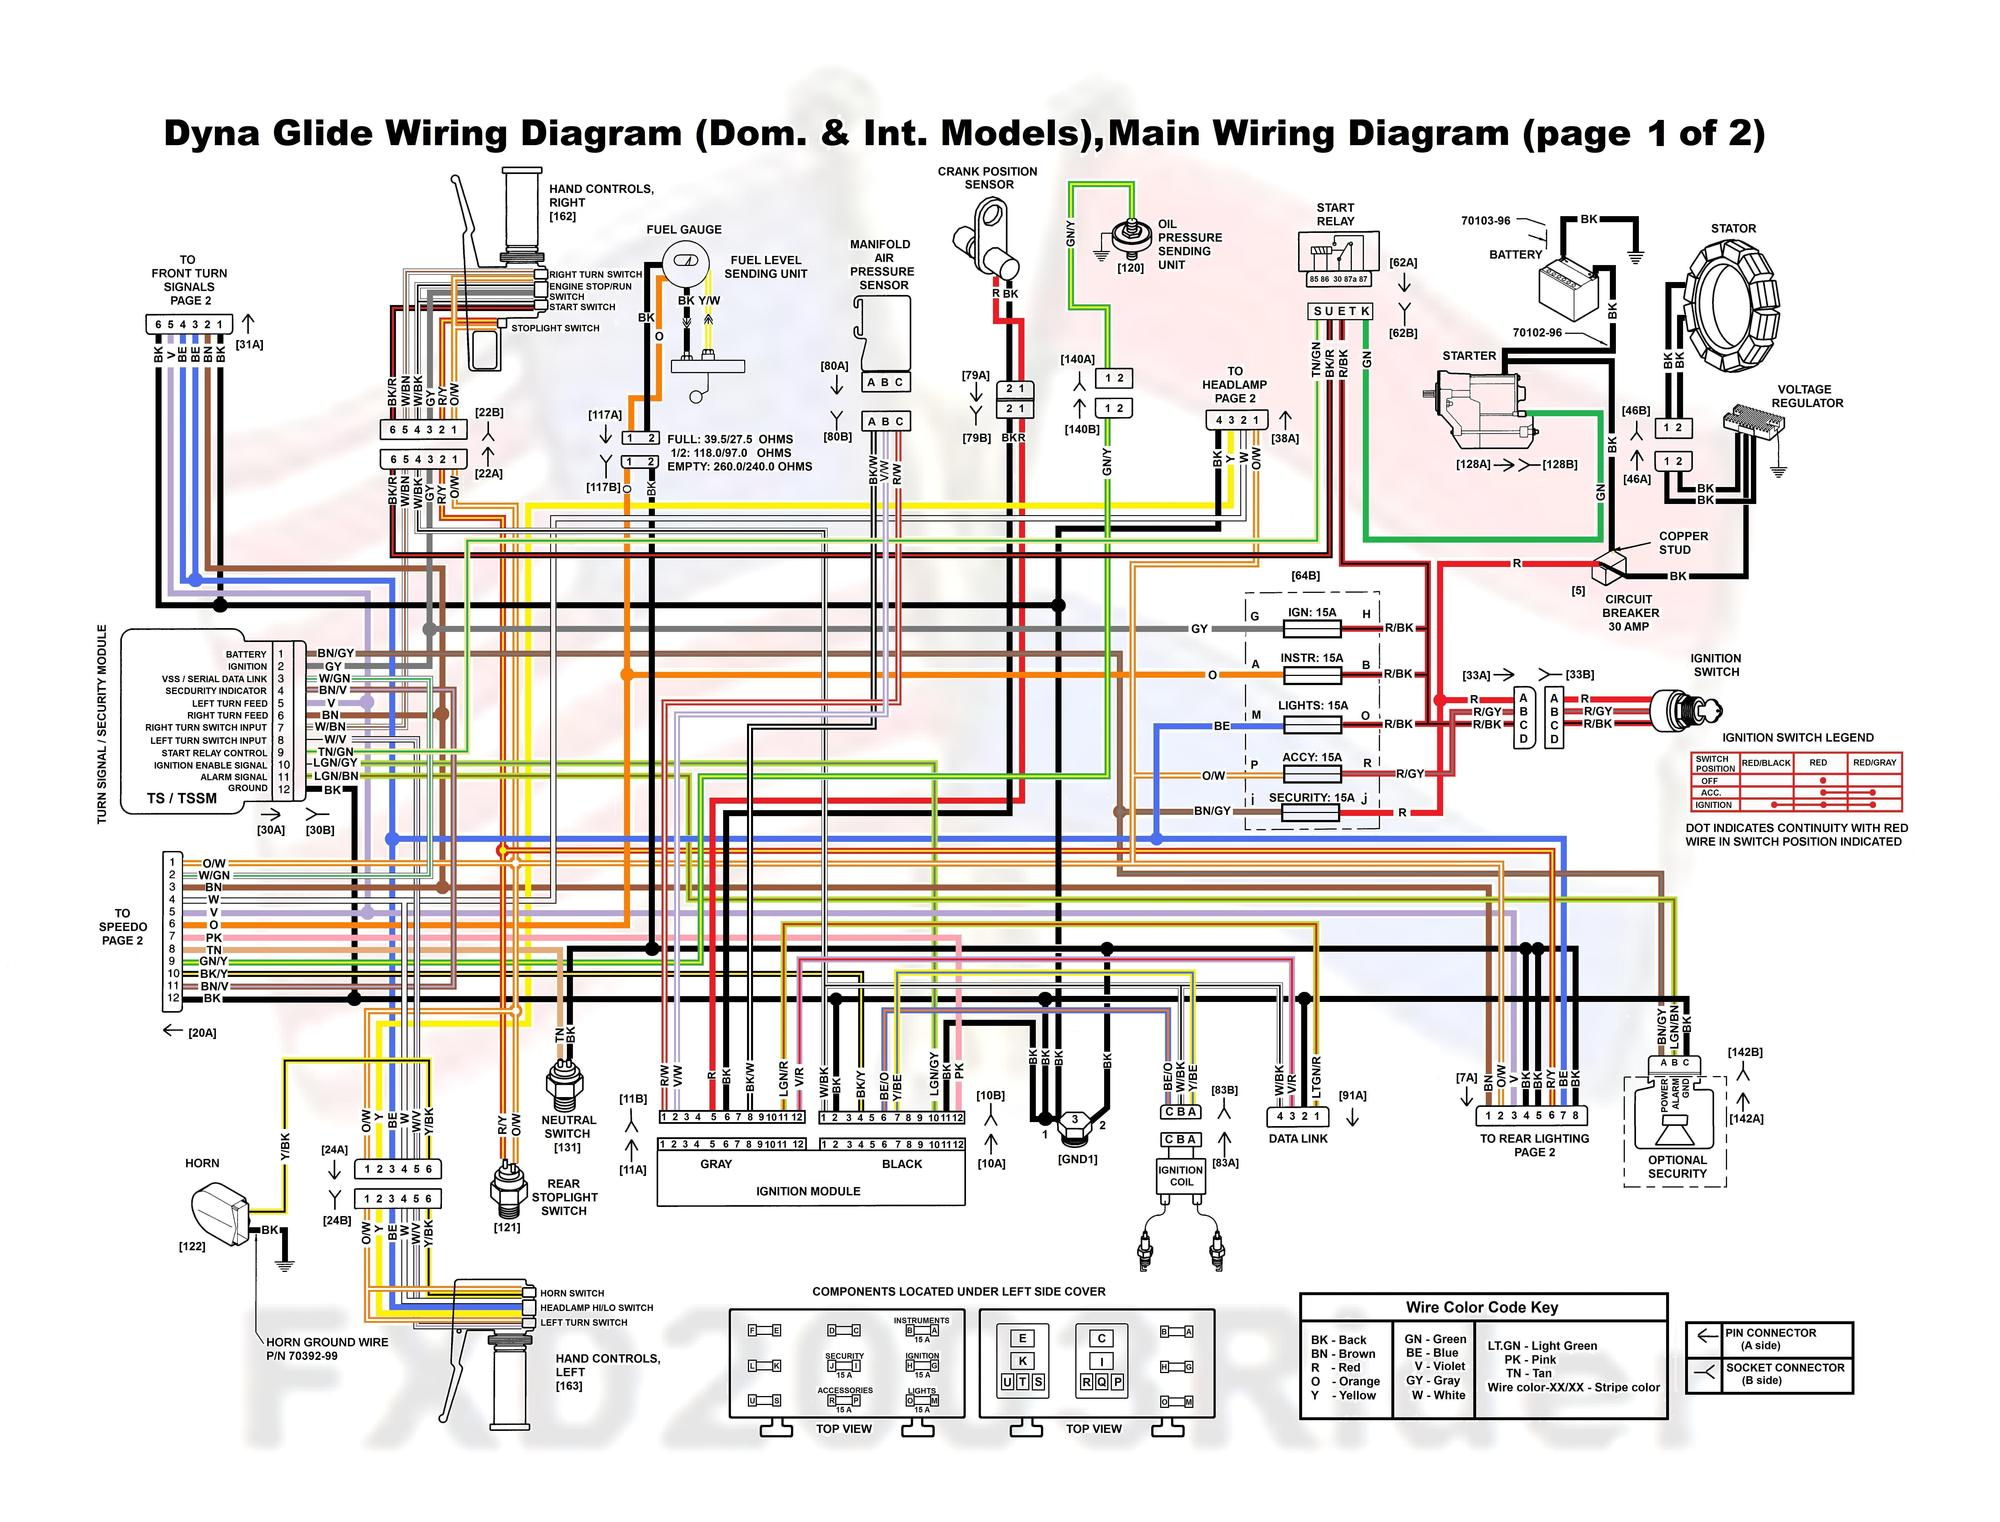 hight resolution of 1973 harley davidson wiring diagram wiring diagram detailed basic wiring diagram harley davidson 1976 harley davidson golf cart wiring diagram